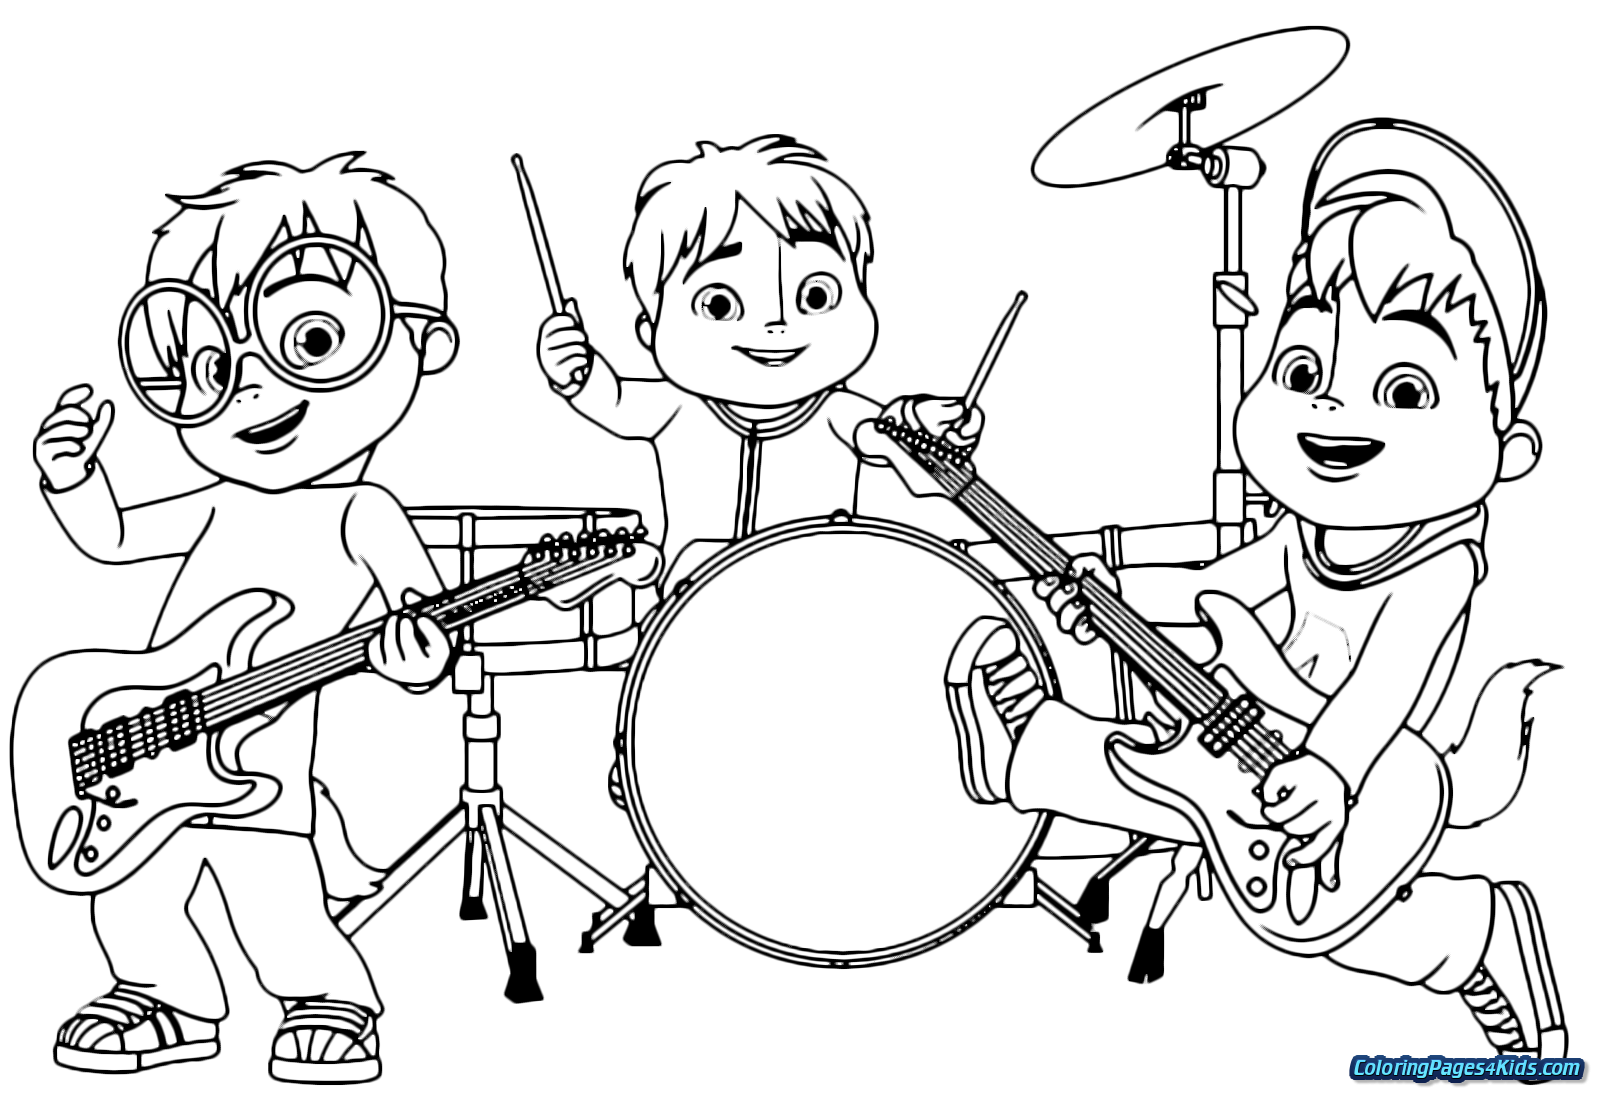 alvin and the chipmunks coloring pages alvin and the chipmunks coloring pages alvin and pages chipmunks coloring the